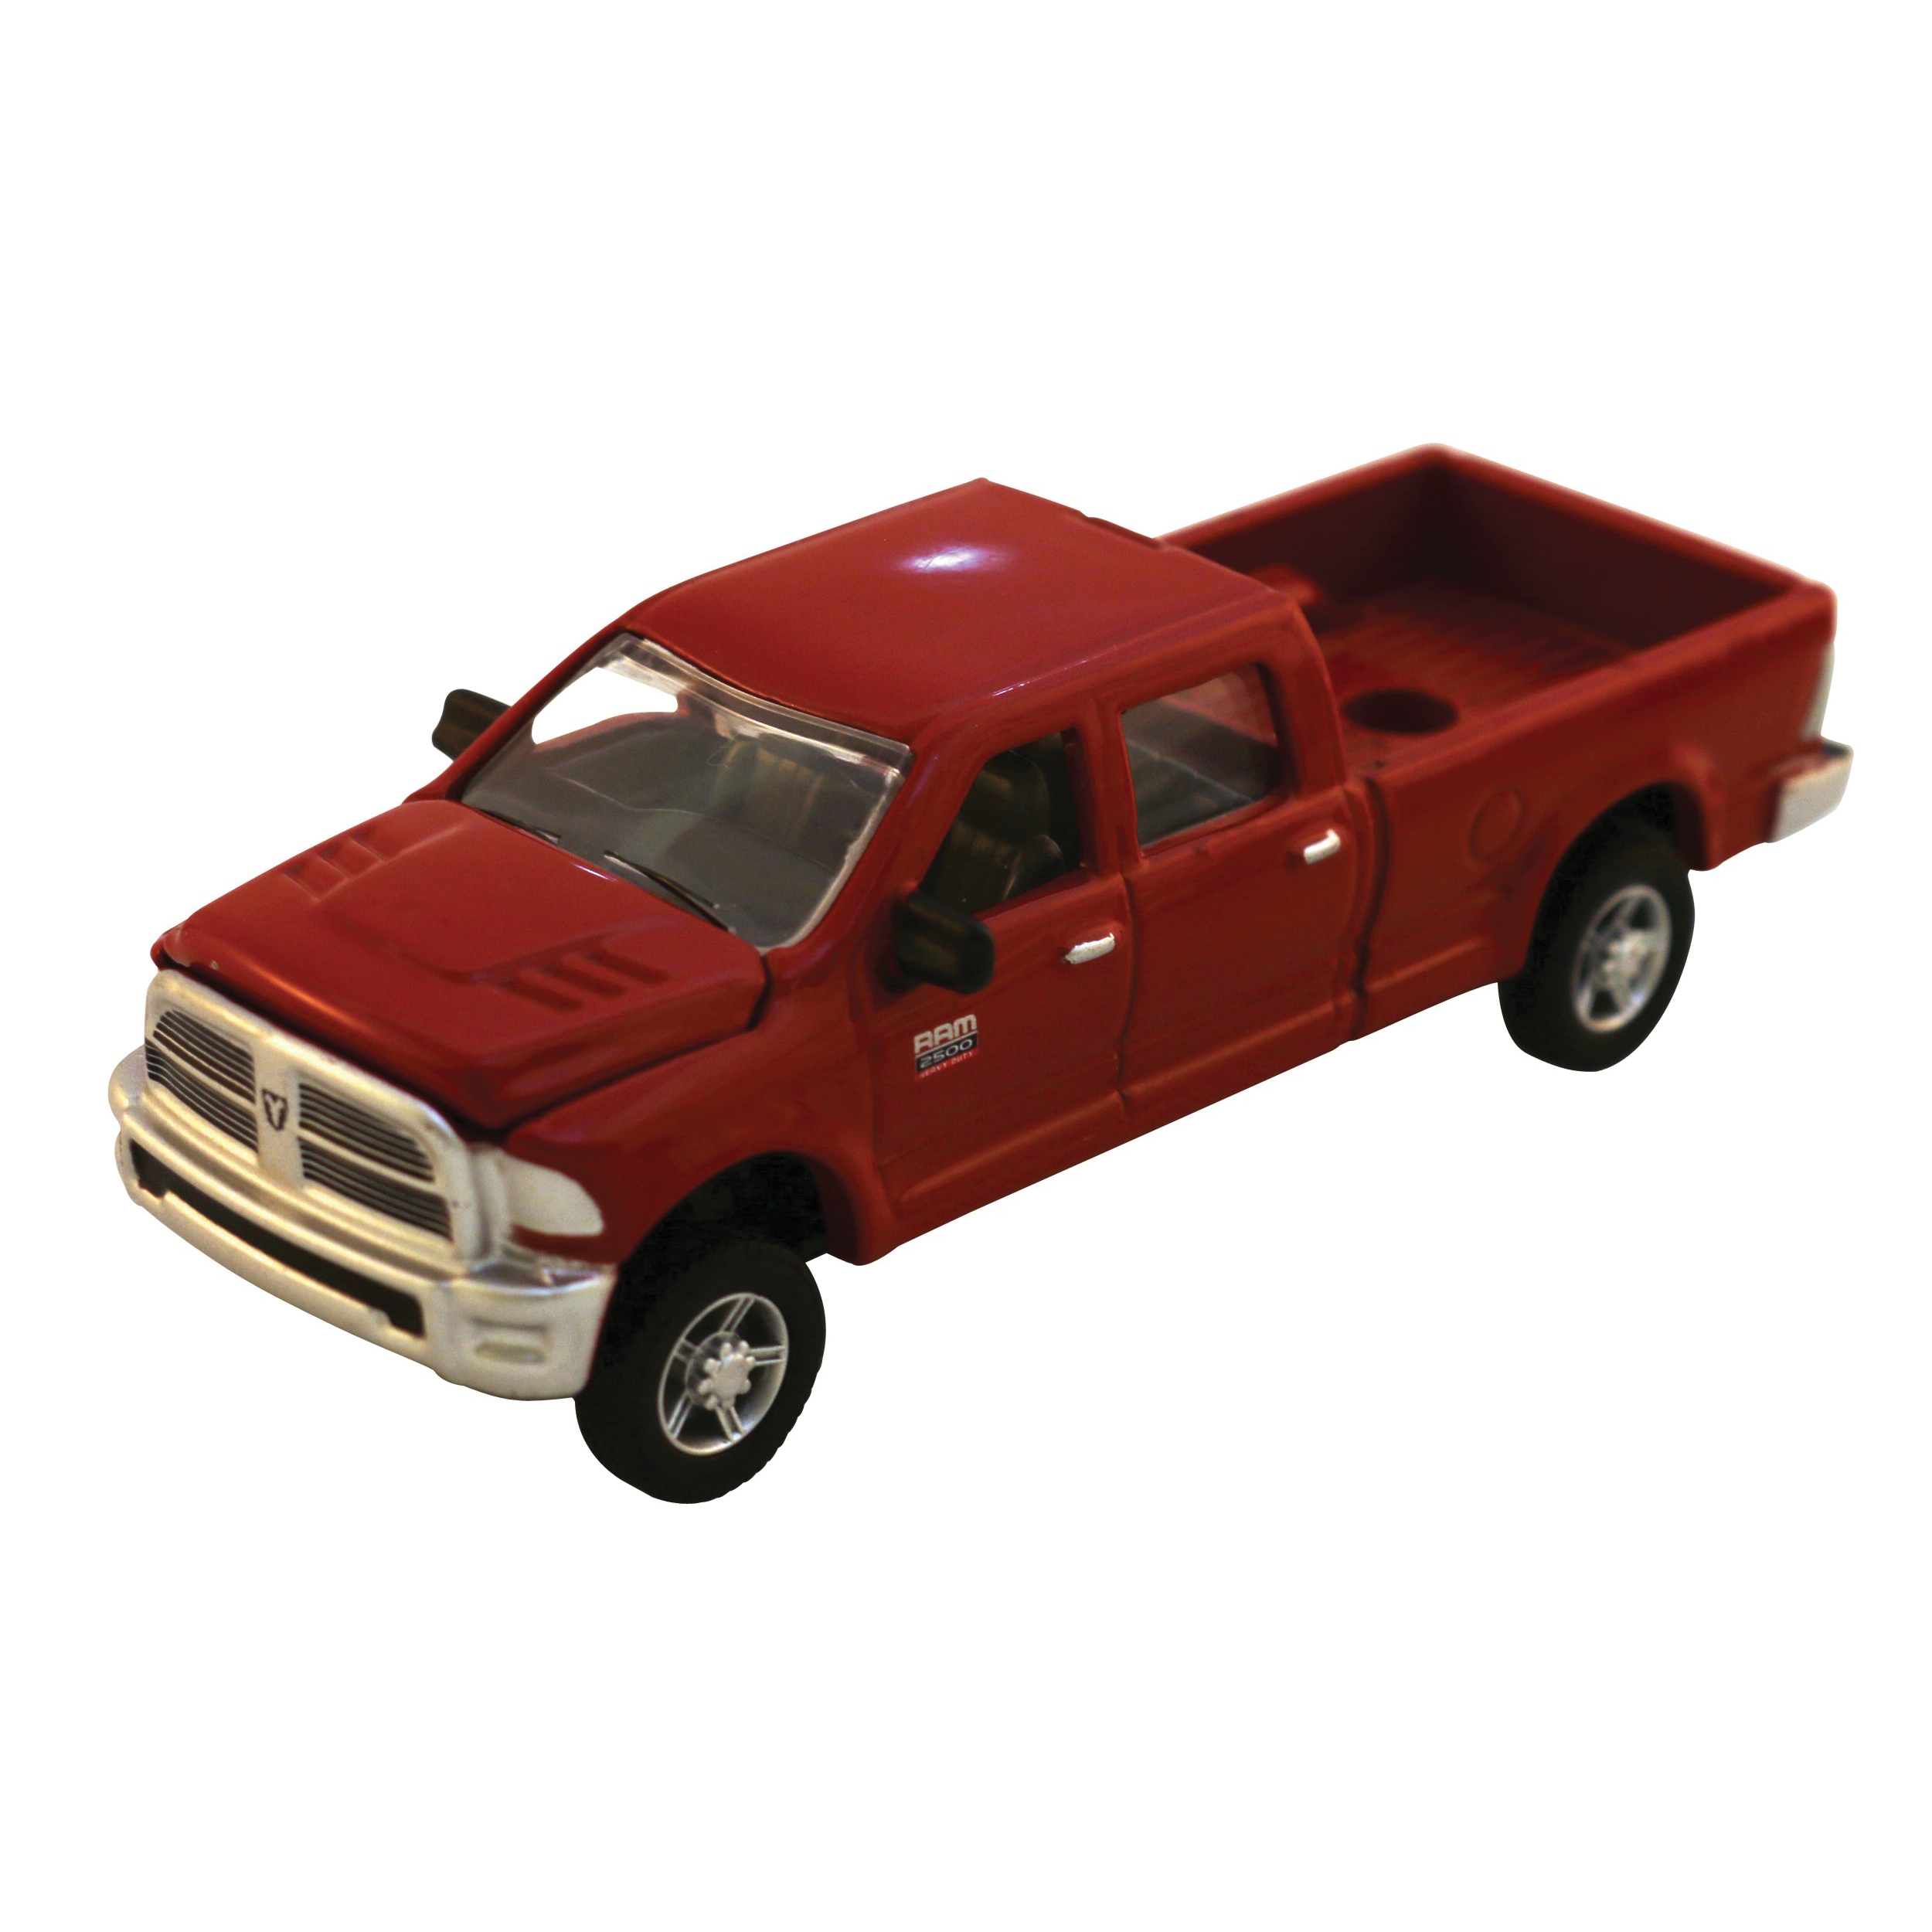 Picture of ERTL Dodge Ram COLLECT N PLAY 46580 Pickup Truck, 3 years and Up, Assorted